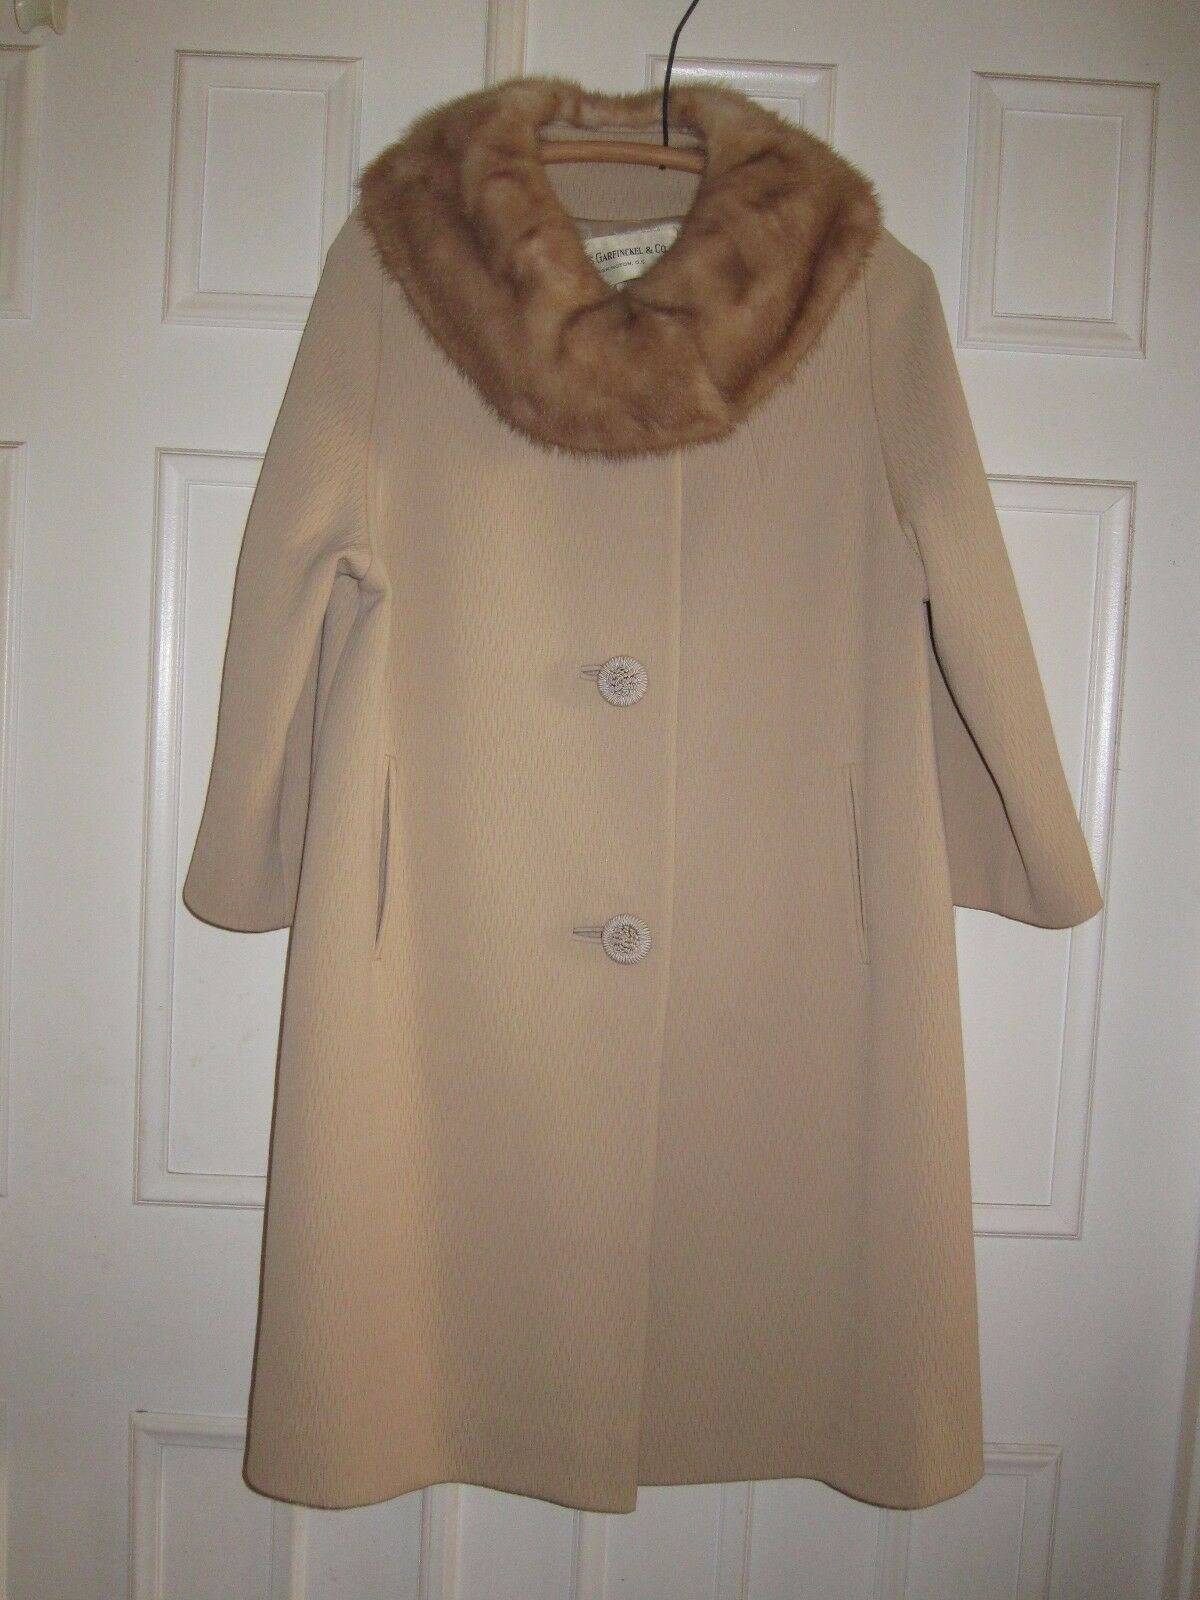 VTG Forstmann Long Women's Tan Textured Coat Fur Collar Fully Lined Sz M (6 8)